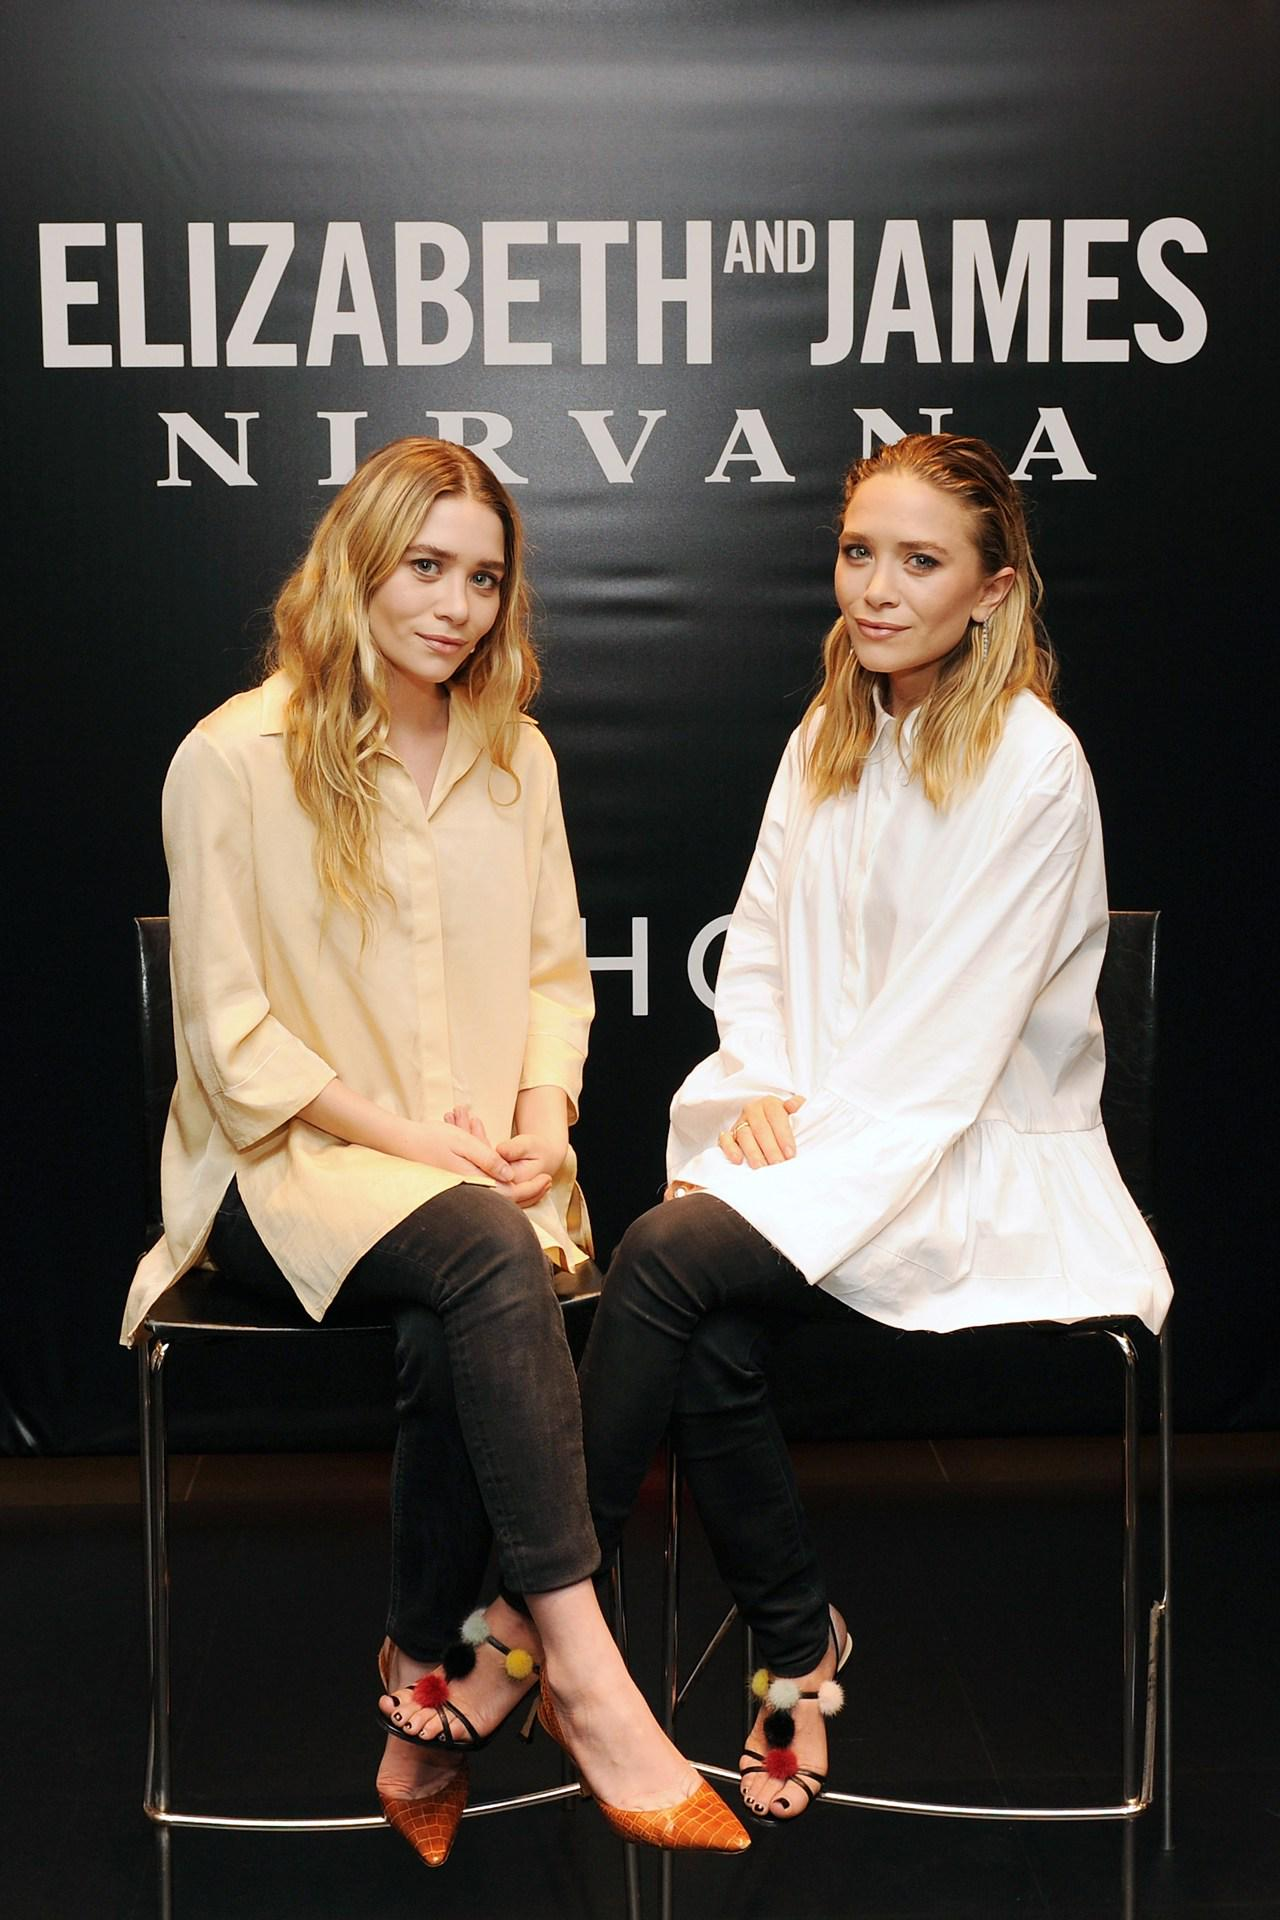 The Olsens are on the move - all the details: http://t.co/3cZwi5enLi http://t.co/1Hqpqj0PNd